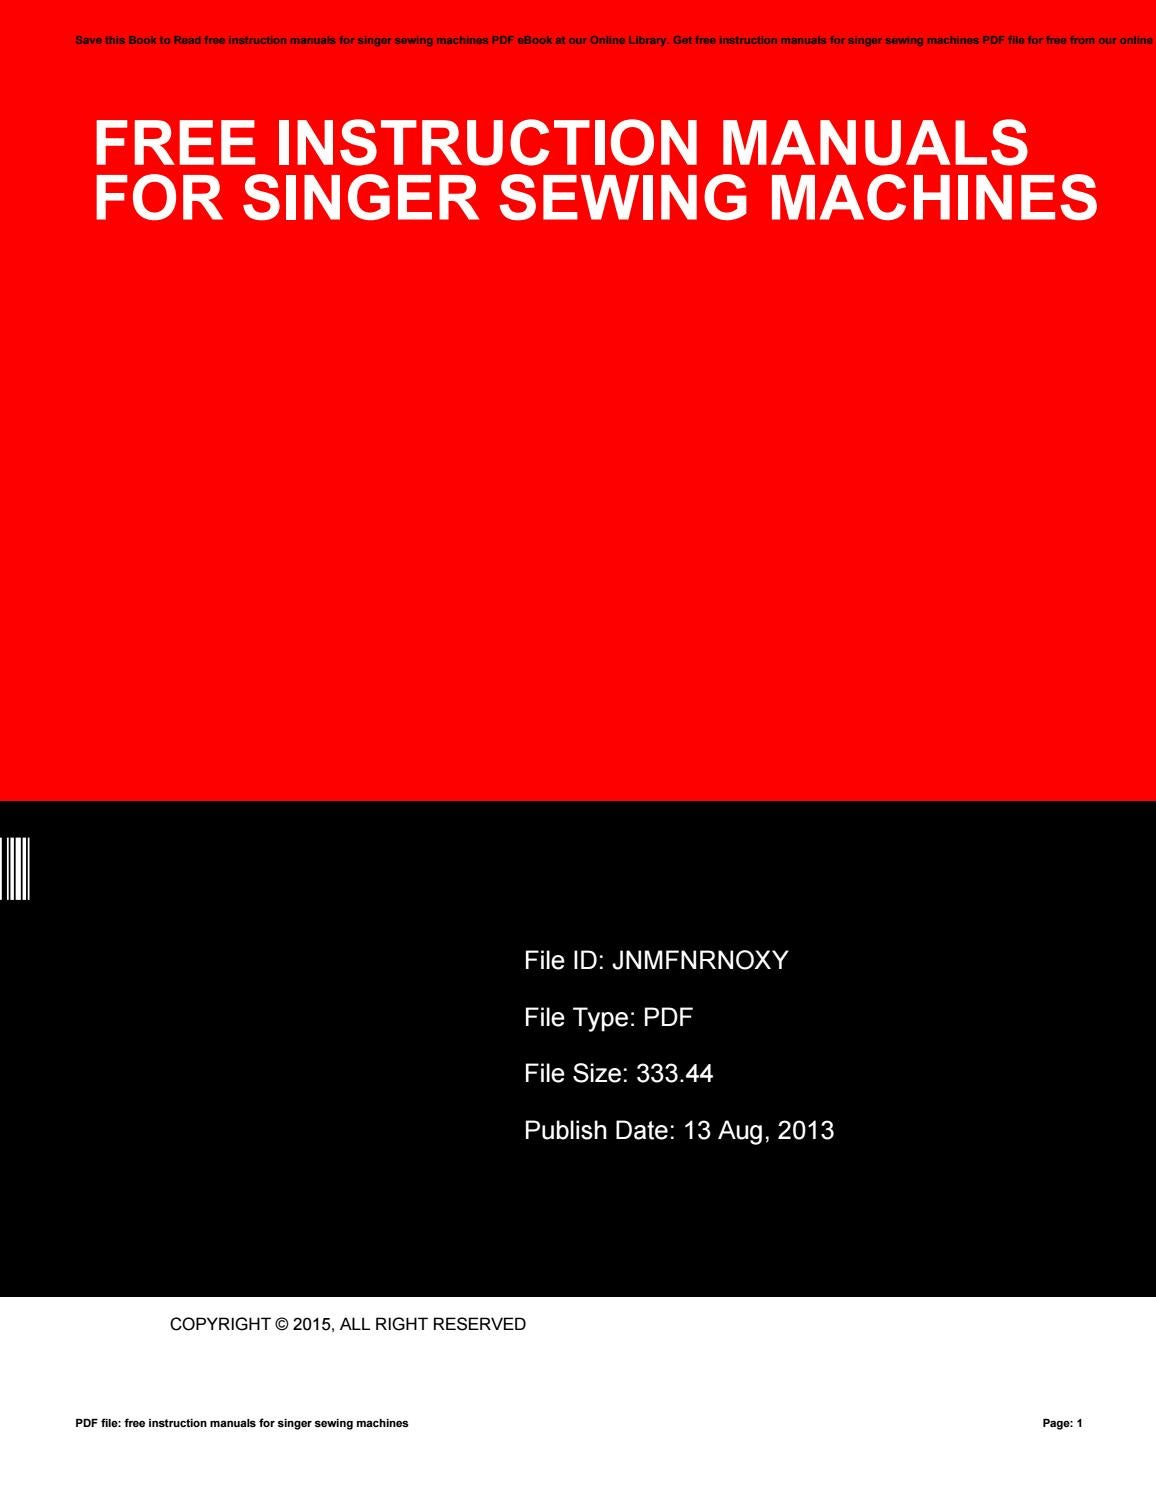 Singer sewing machine repair manuals free.